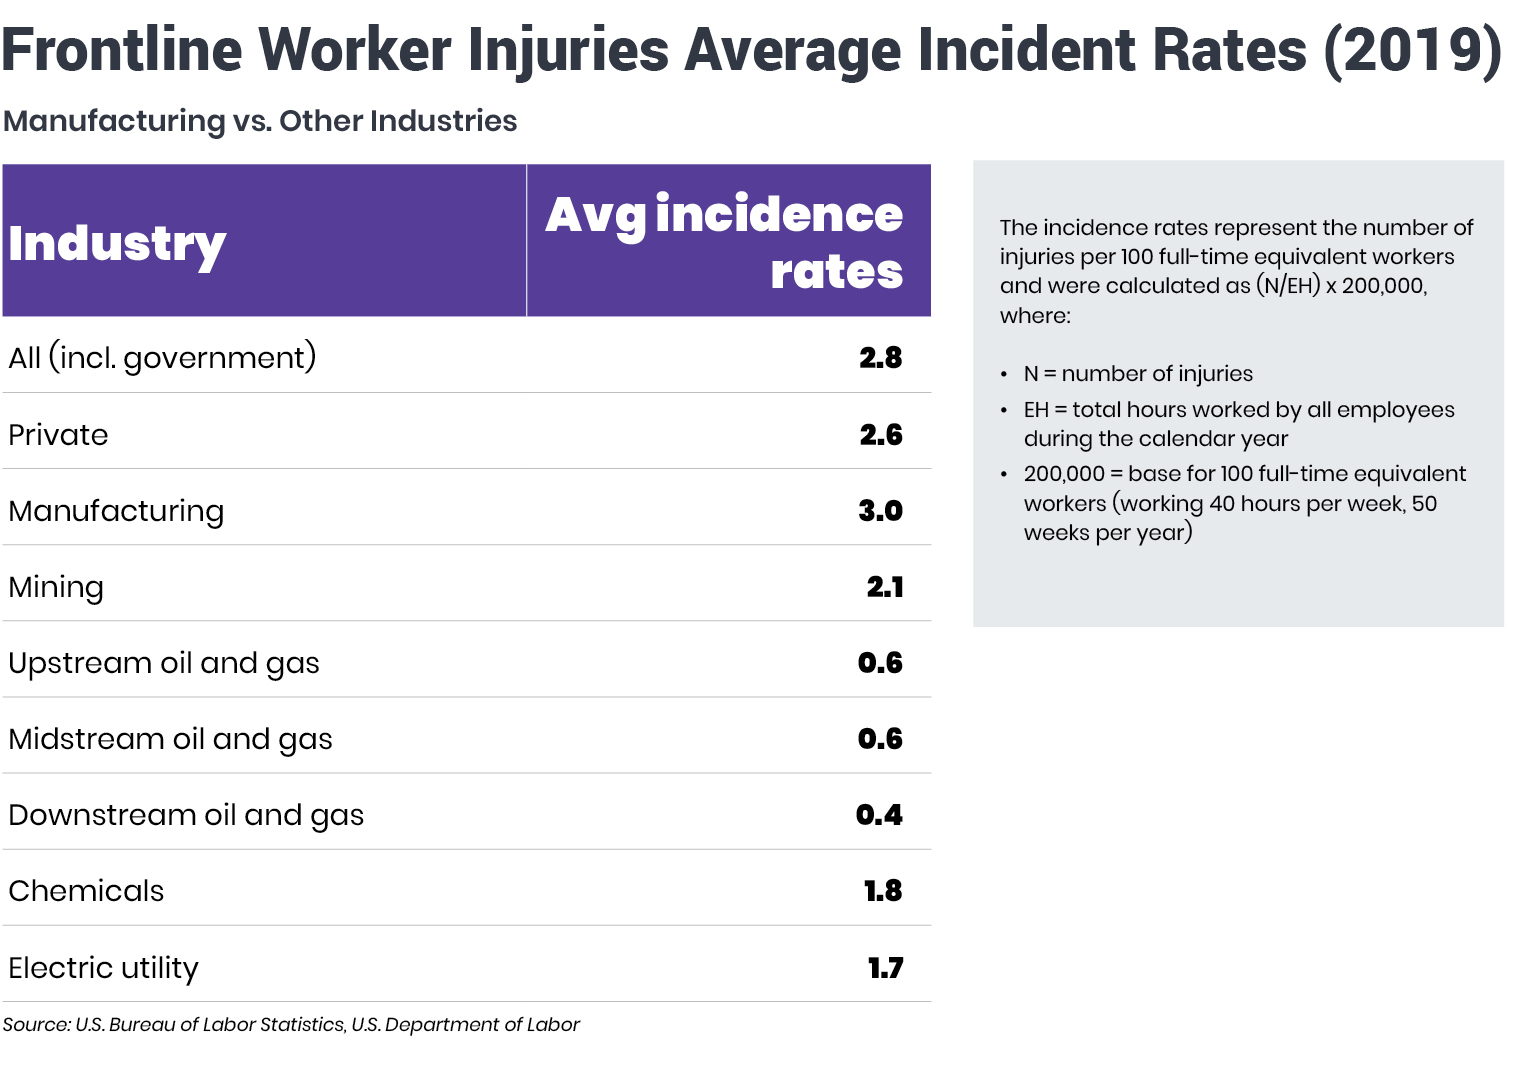 Frontline-Worker-Injuries-Average-Incident-Rates-2019-graphic